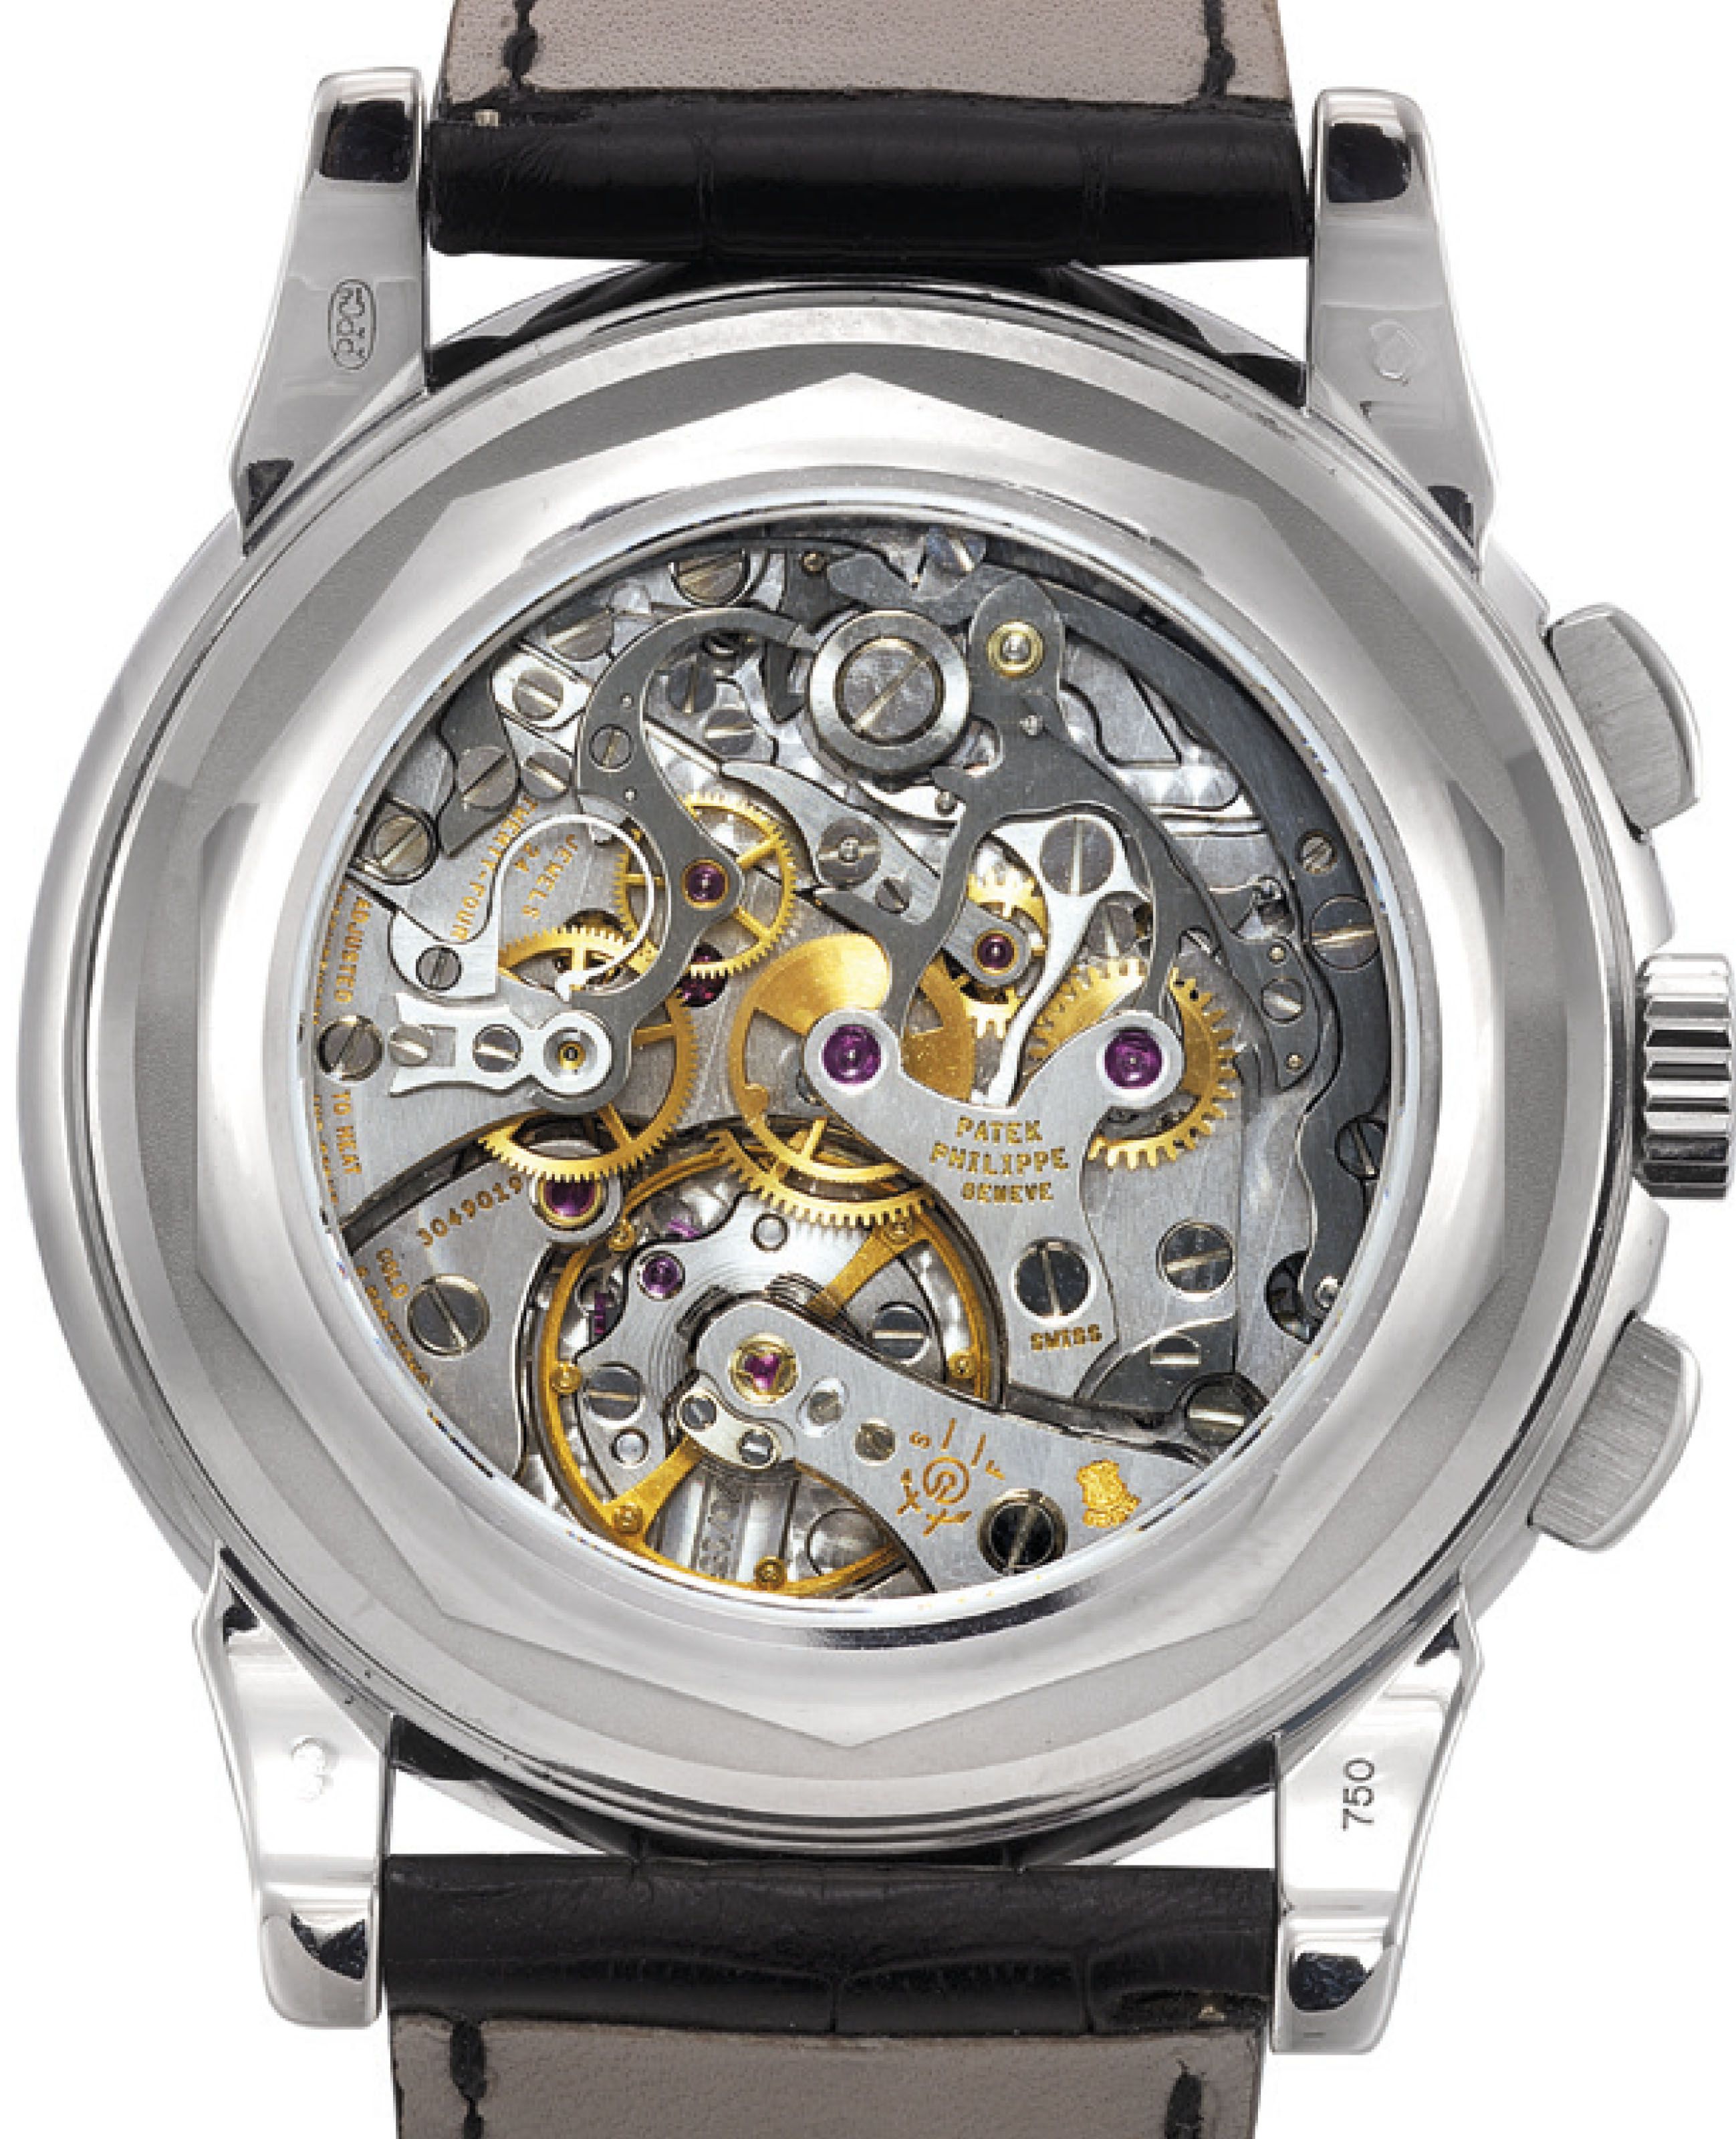 PATEK PHILIPPE. A FINE AND RARE 18K WHITE GOLD PERPETUAL CALENDAR CHRONOGRAPH WRISTWATCH WITH MOON PHASES, 24 HOUR, LEAP YEAR INDICATION, ADDITIONAL CASE BACK, ORIGINAL CERTIFICATE AND BOX